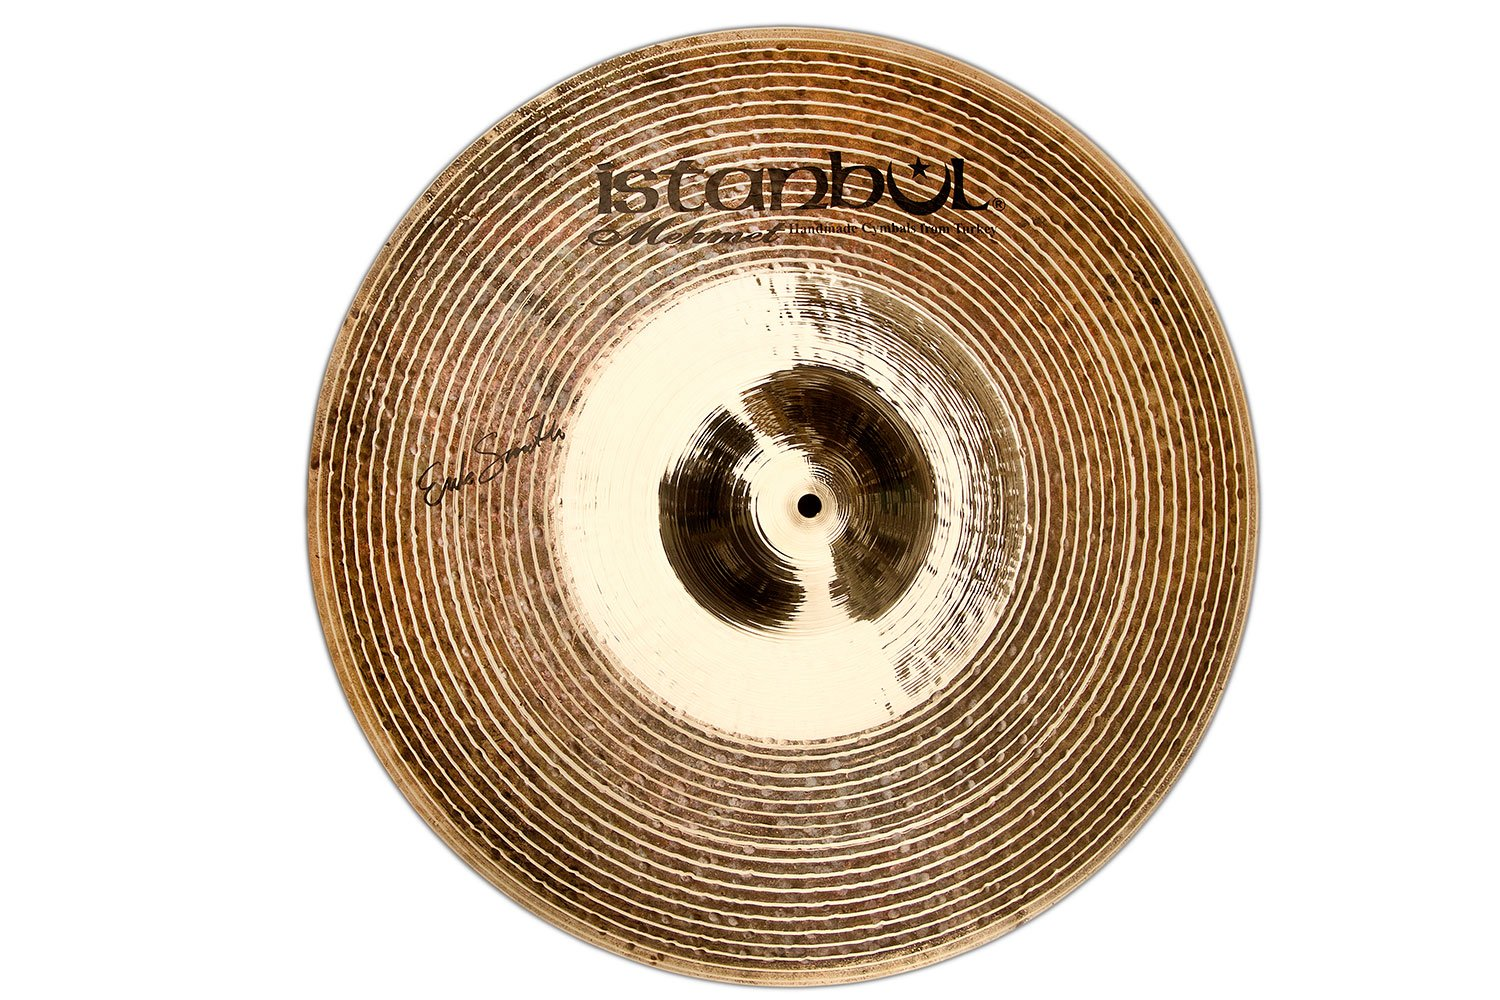 Istanbul Mehmet Cymbals Signature Series ES-RV22 Erik Smith Versa 22-Inch Ride Cymbal by Istanbul Mehmet Cymbals